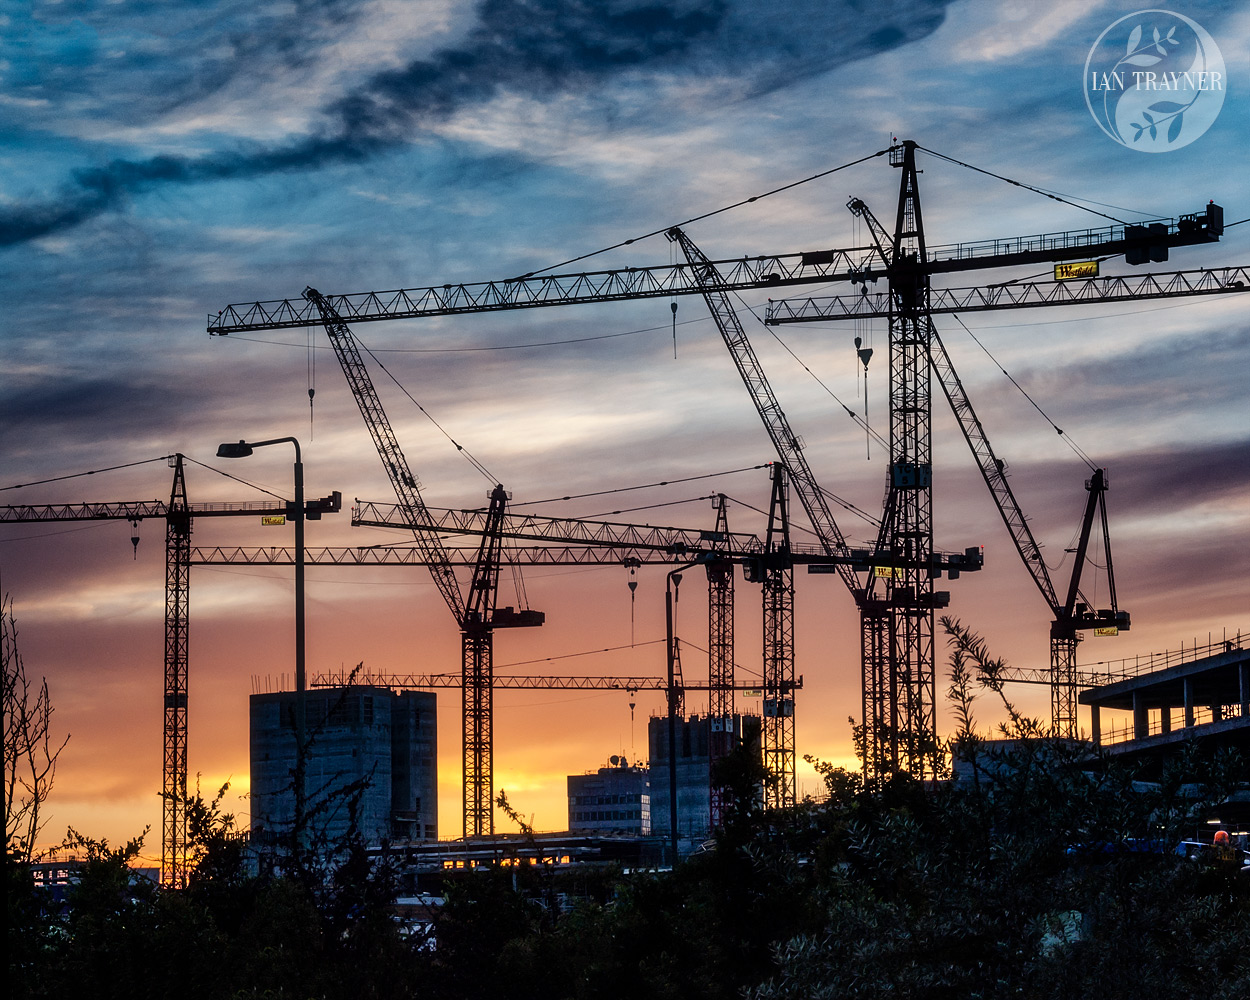 Cranes silhouetted against the sunset. Westfield London during construction. Photo taken by Ian Trayner in 2007.